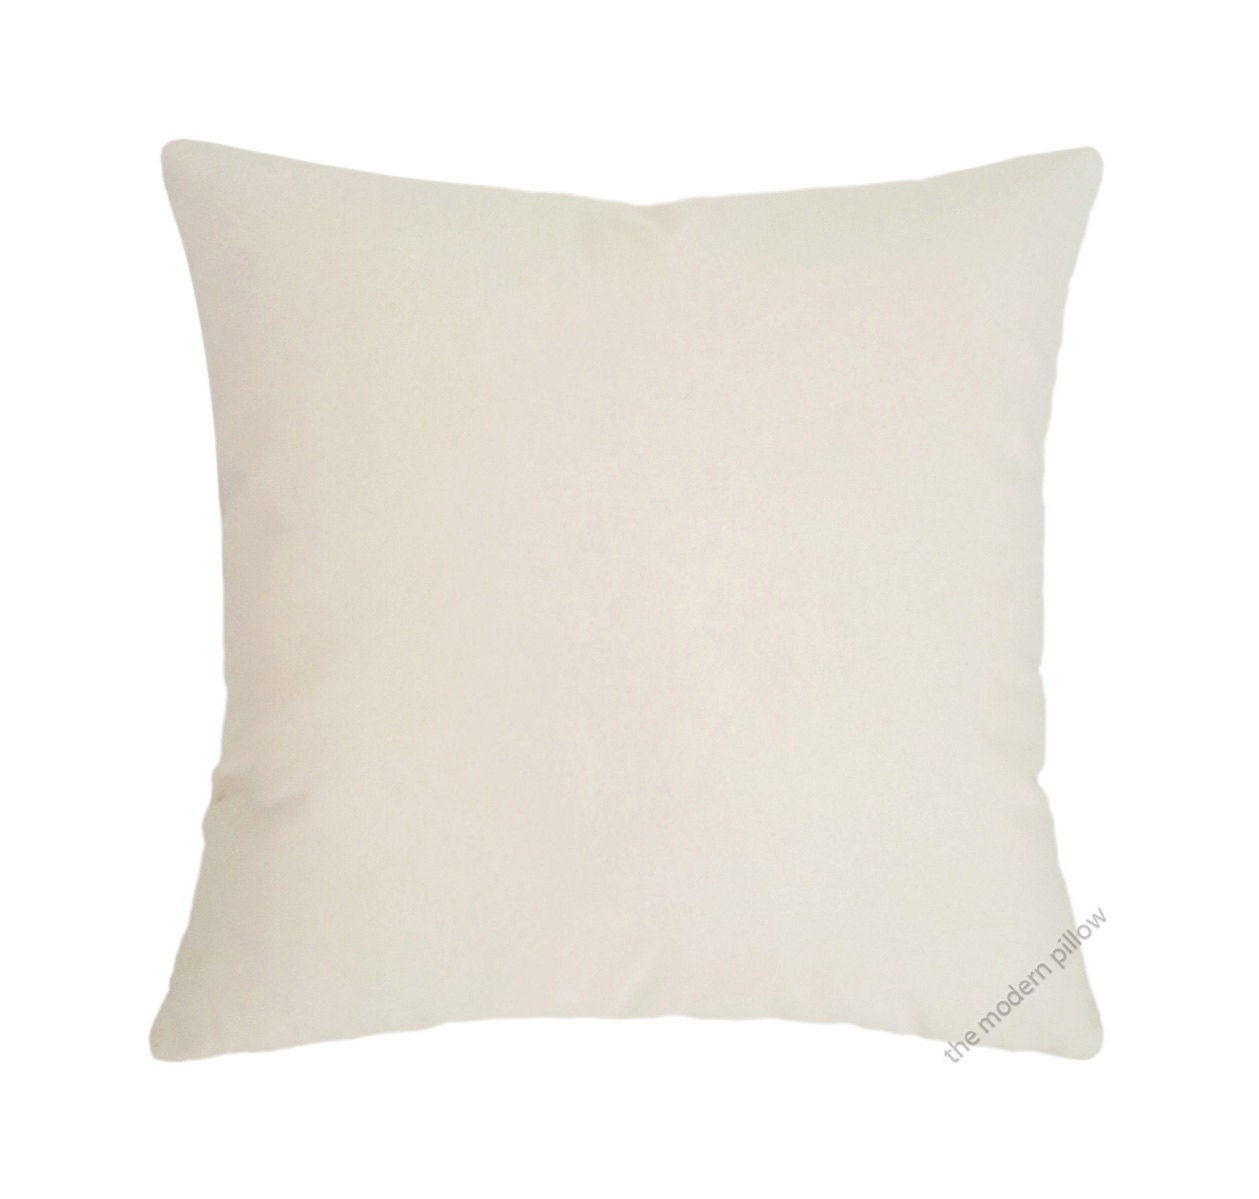 Natural Decorative Pillow : Natural Ivory Beige Solid Cotton Decorative Throw Pillow Cover